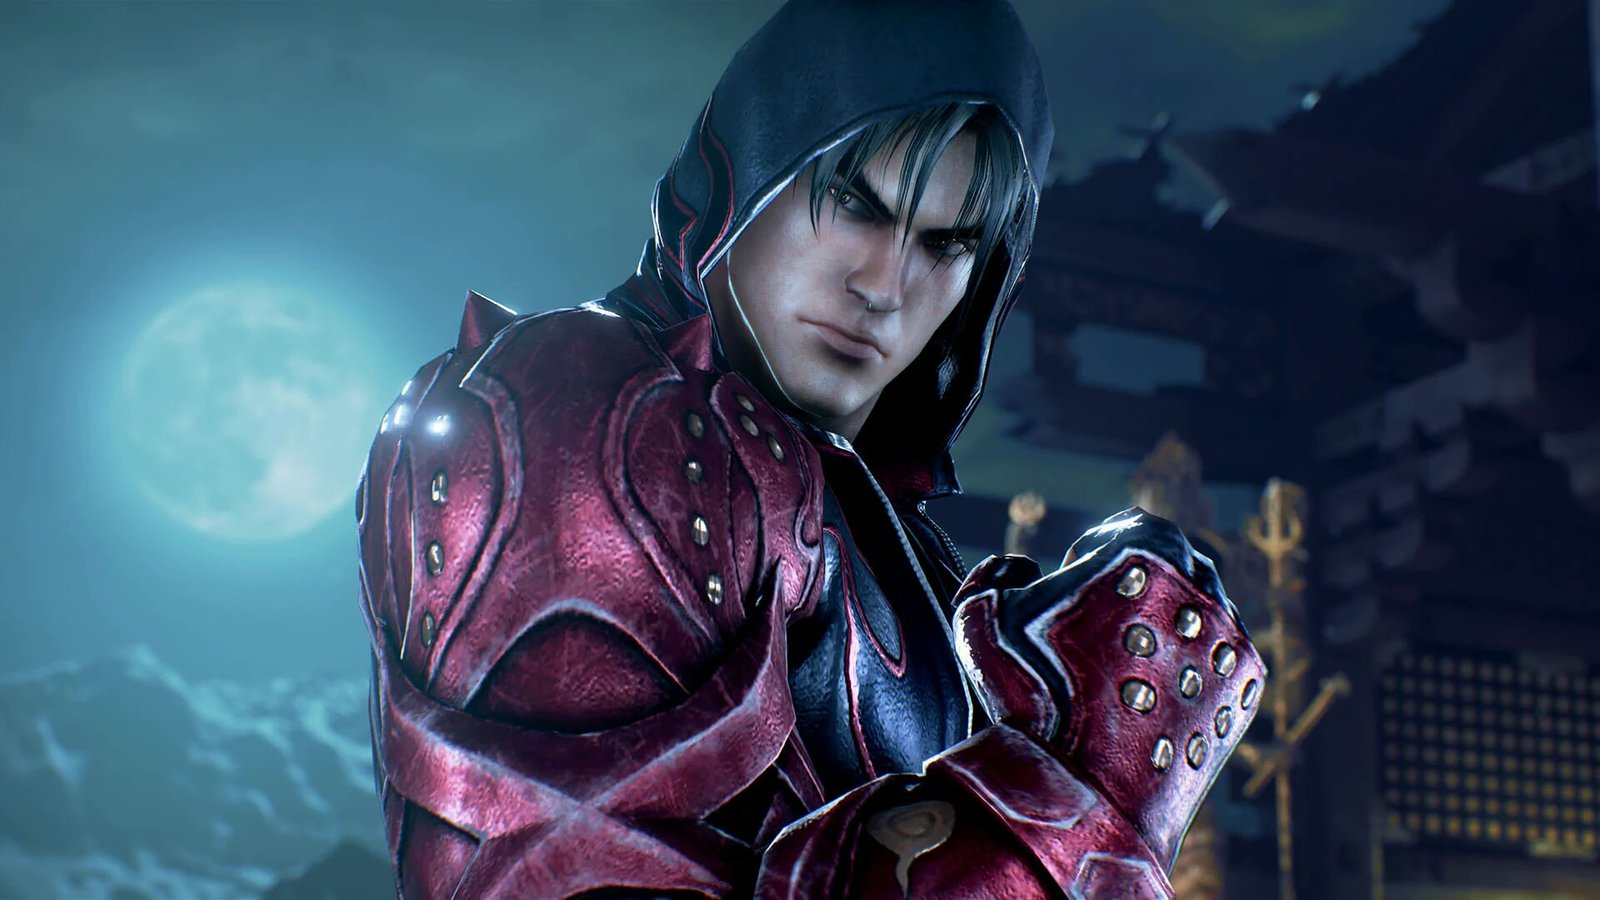 Watch Movies And Tv Shows With Character Jin Kazama For Free List